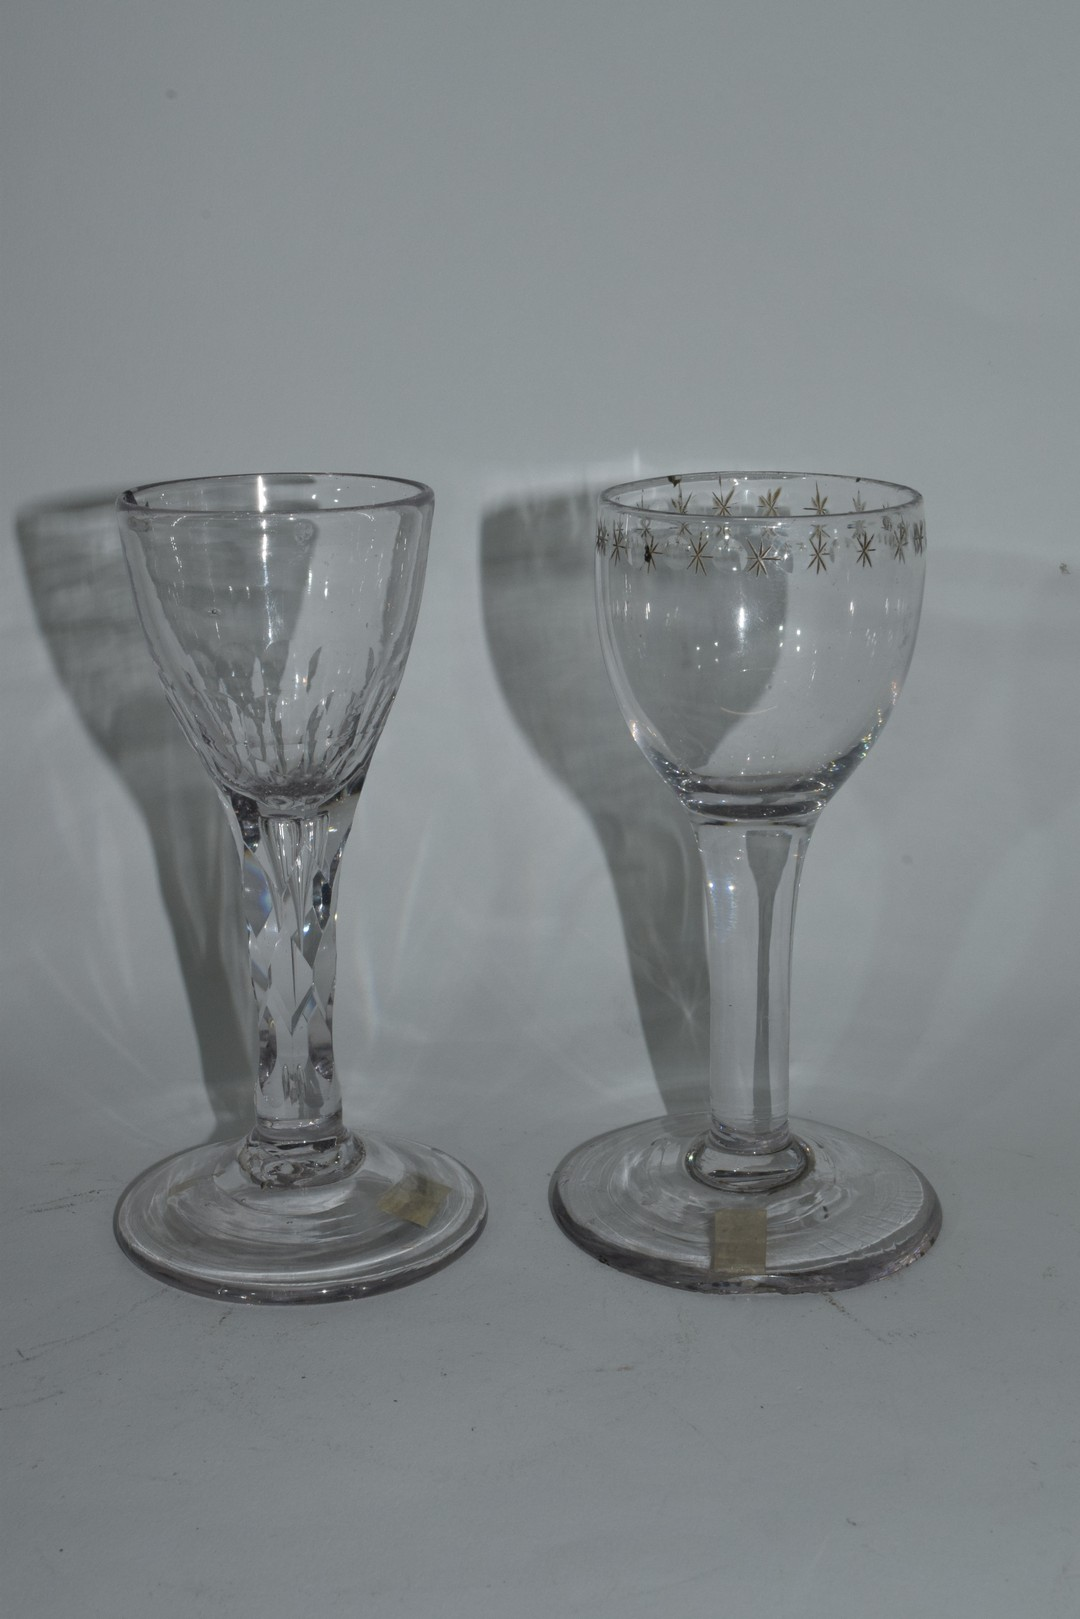 Two 18th century glasses